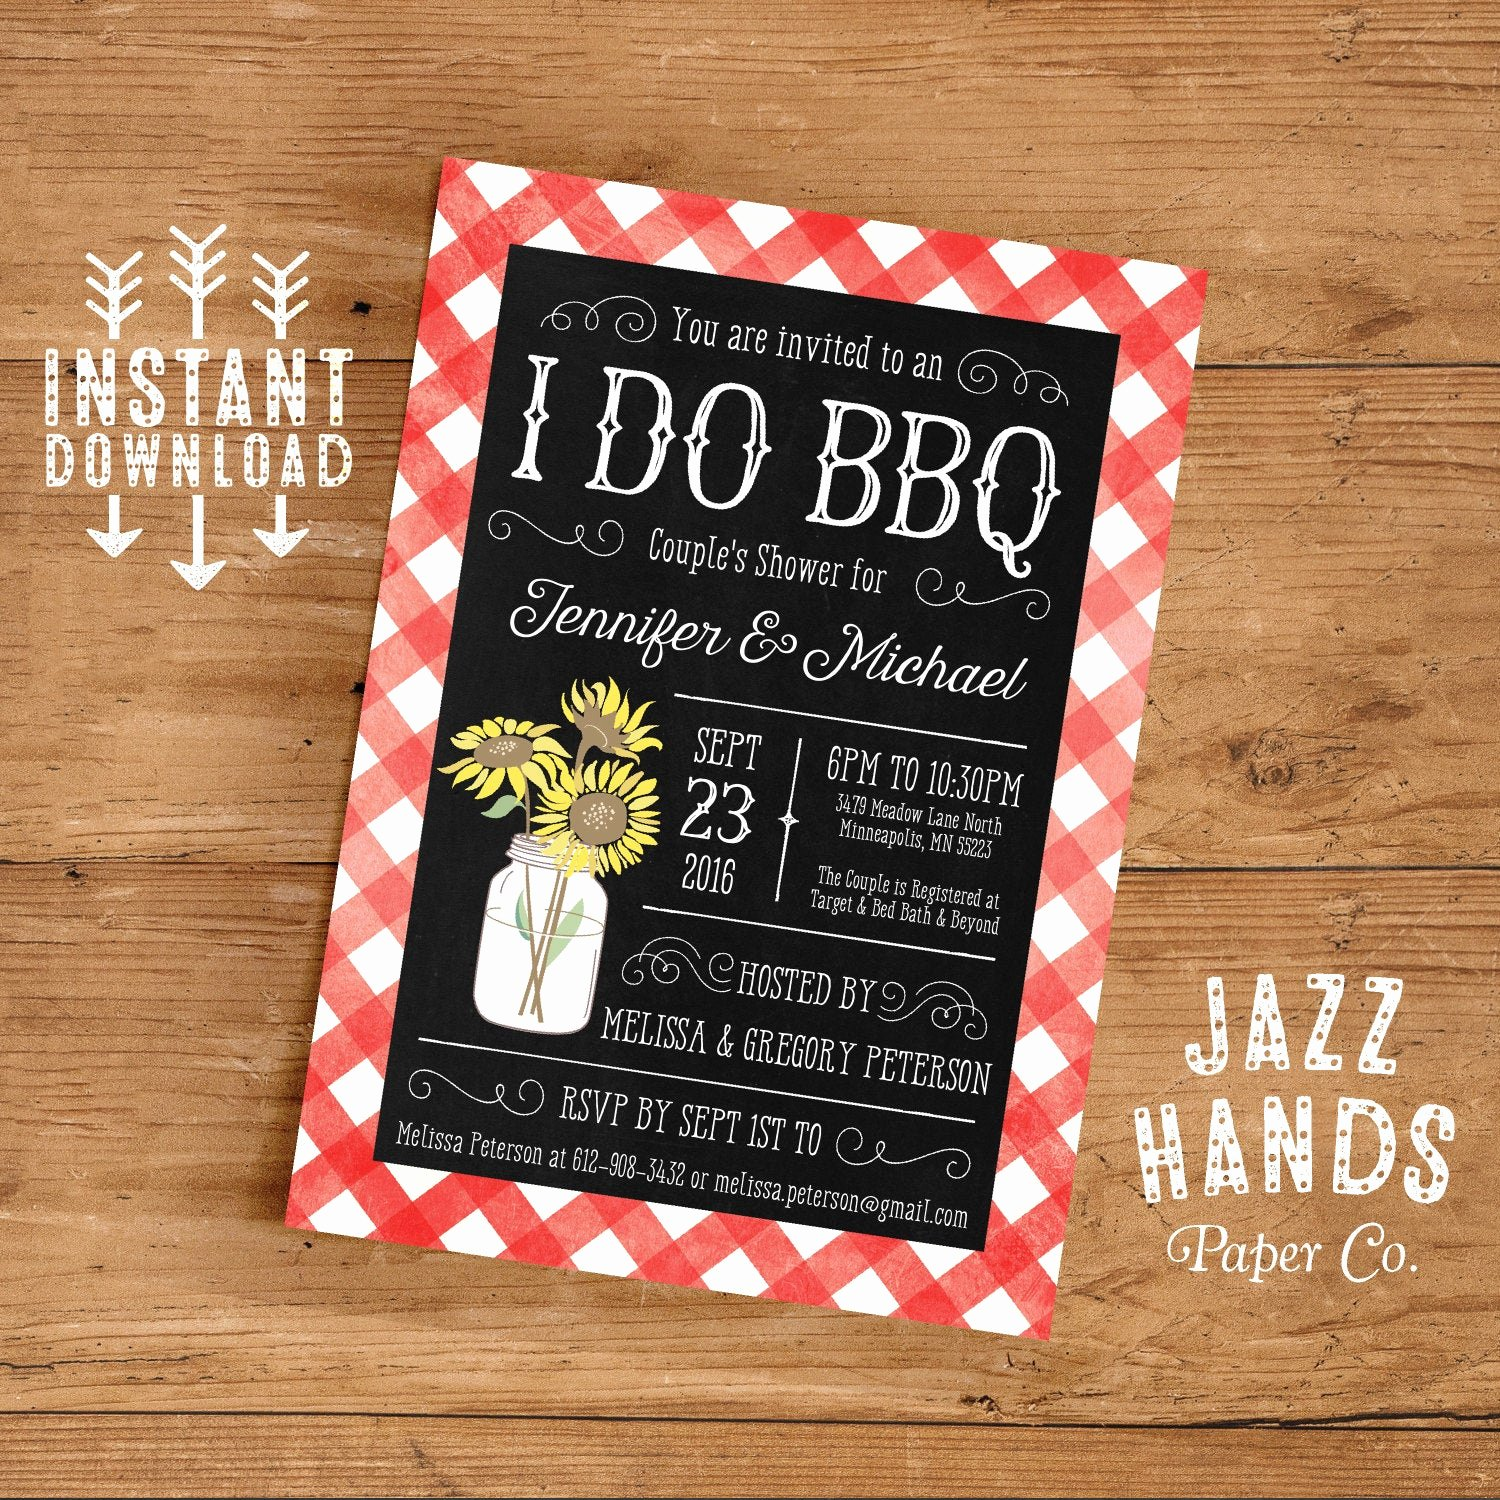 Free Printable Bbq Invitations Best Of Printable I Do Bbq Couples Shower Invitation Template Diy